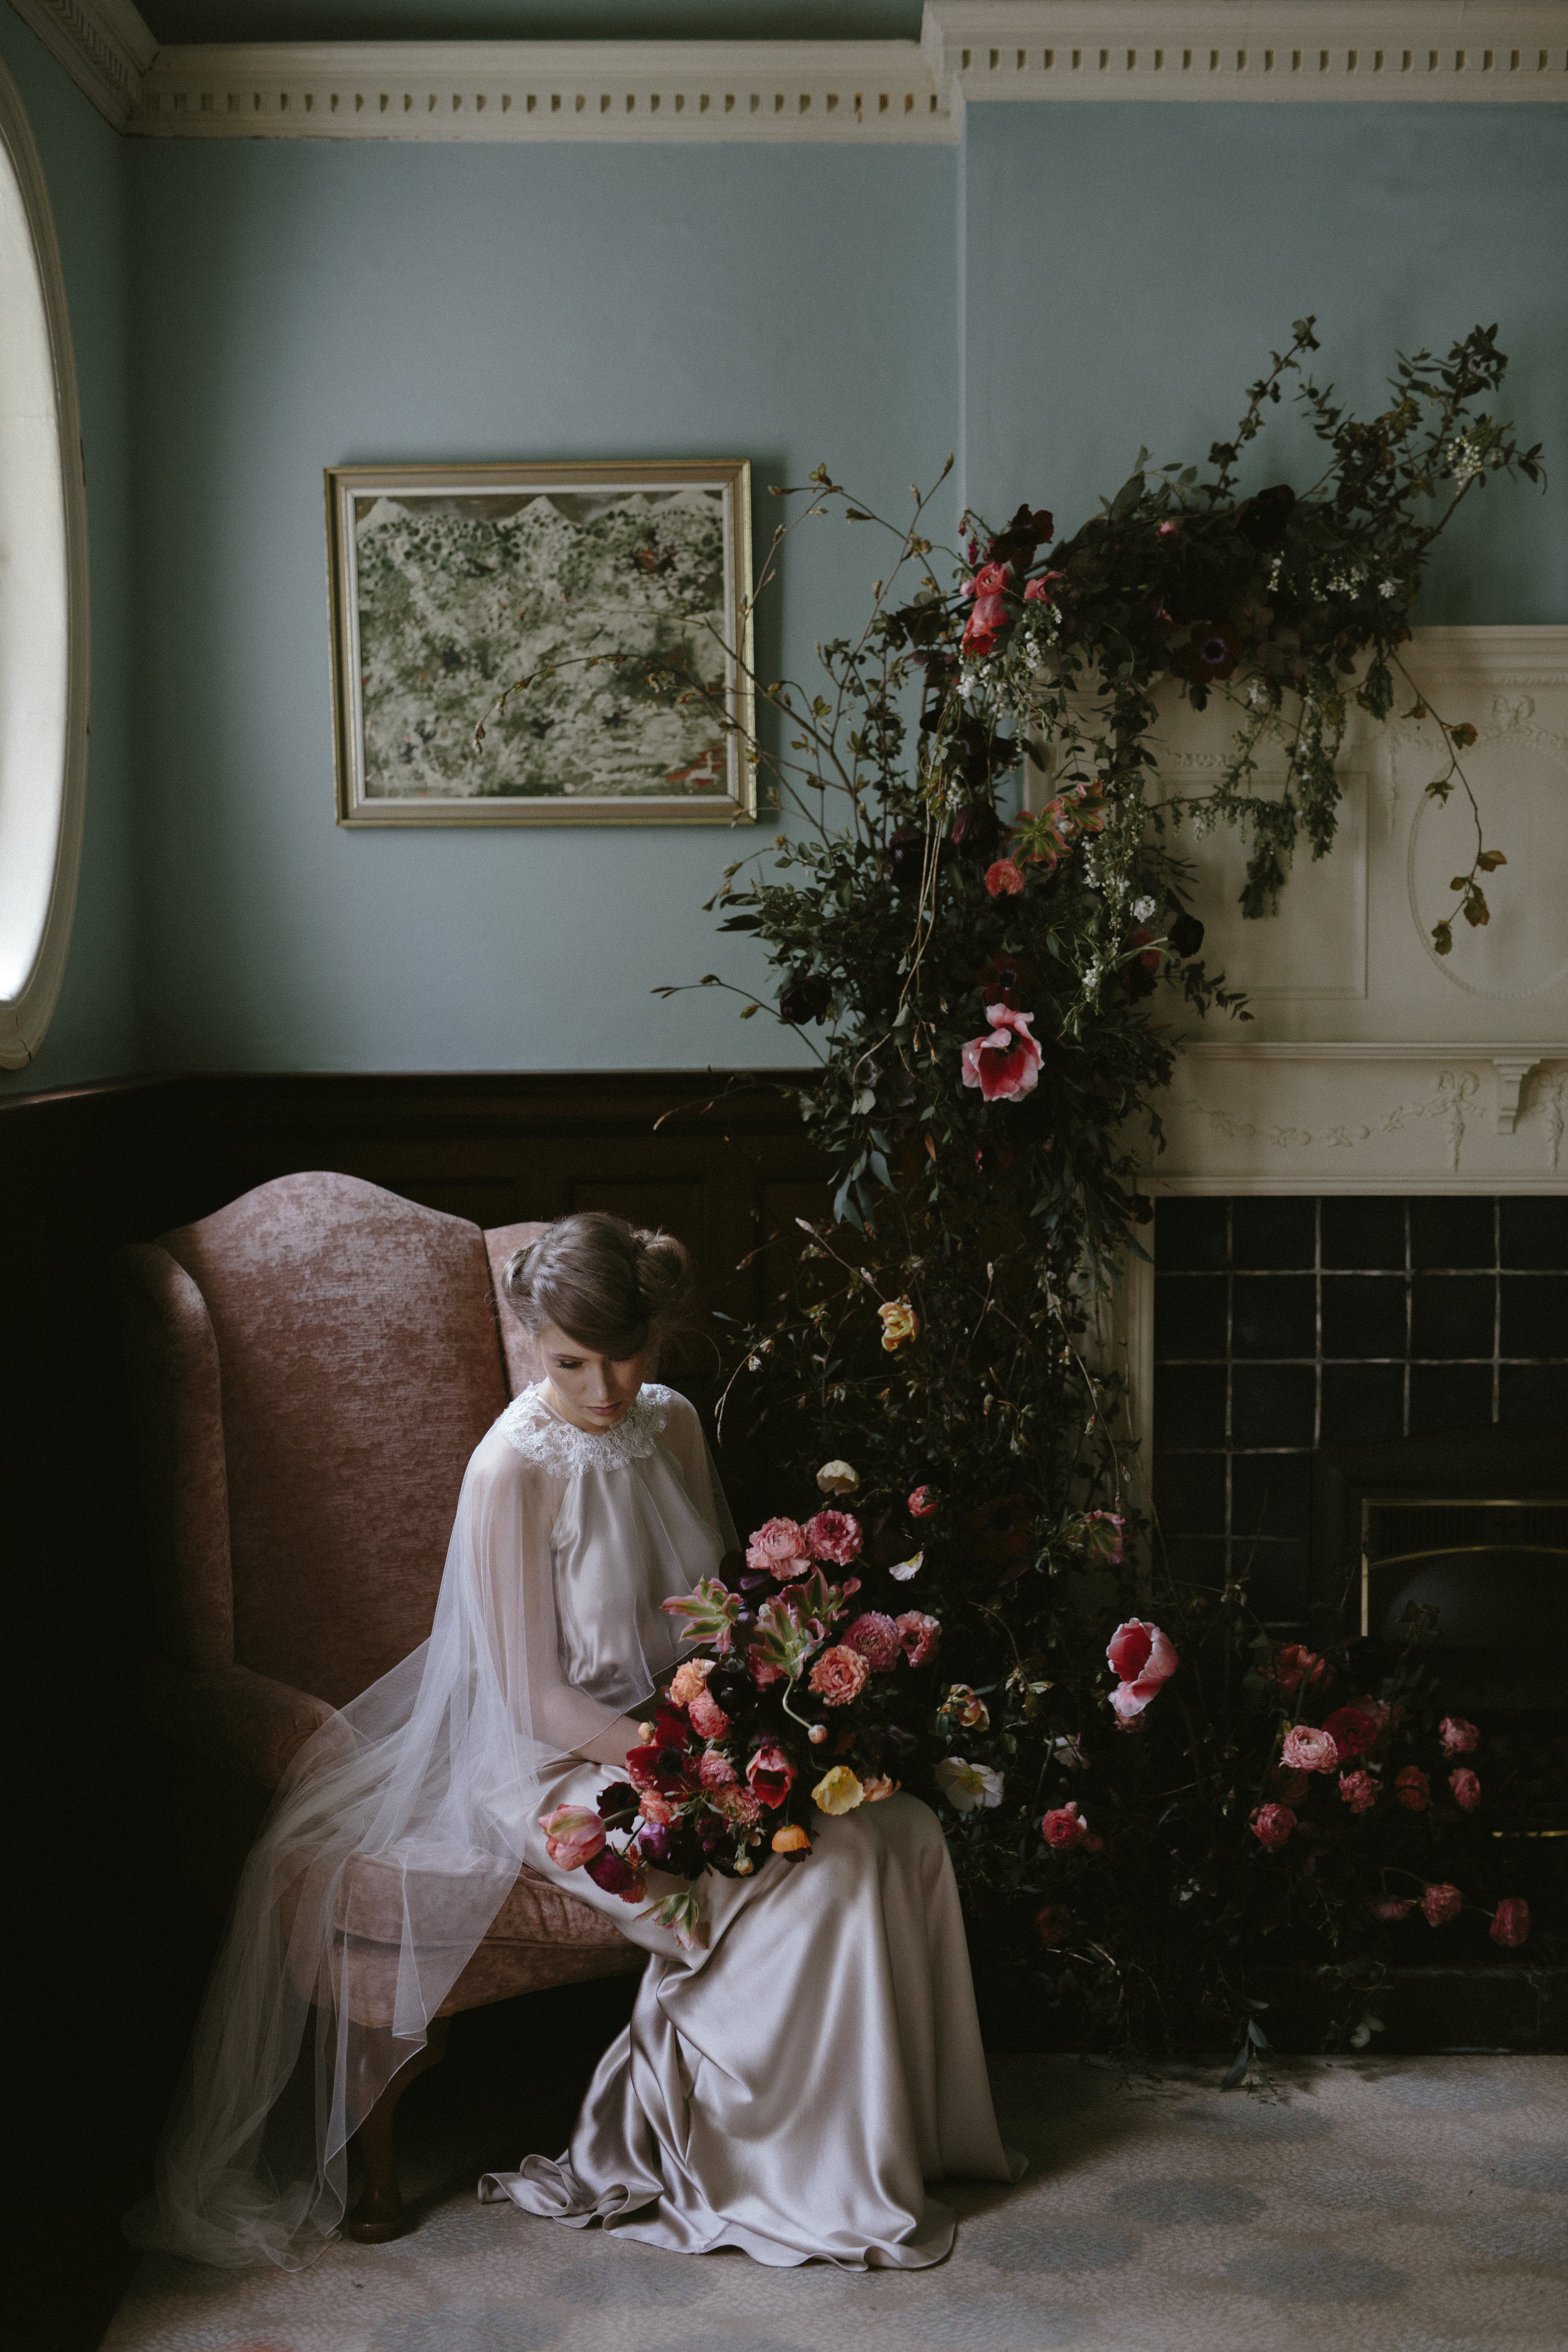 Agnes-and-bee-Kate-Beaumont-wedding-dresses-Ruth-Atkinson-22.jpg